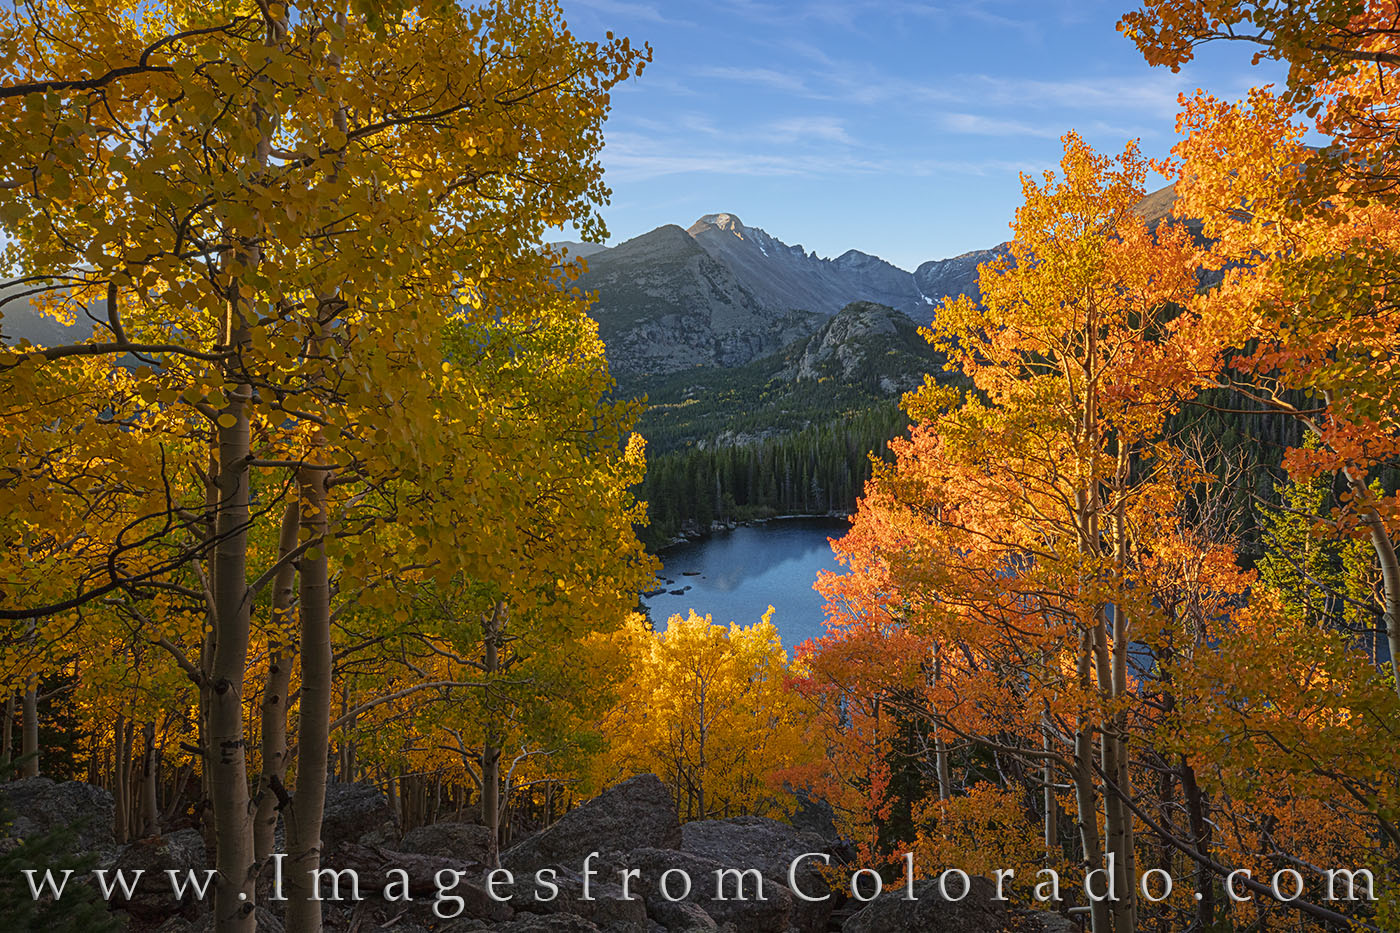 rocky mountain national park, rmnp, aspen, bear lake, autumn, colorado fall, colorado aspen, fall colors, autumn colors, colorado images, colrado autumn, photo